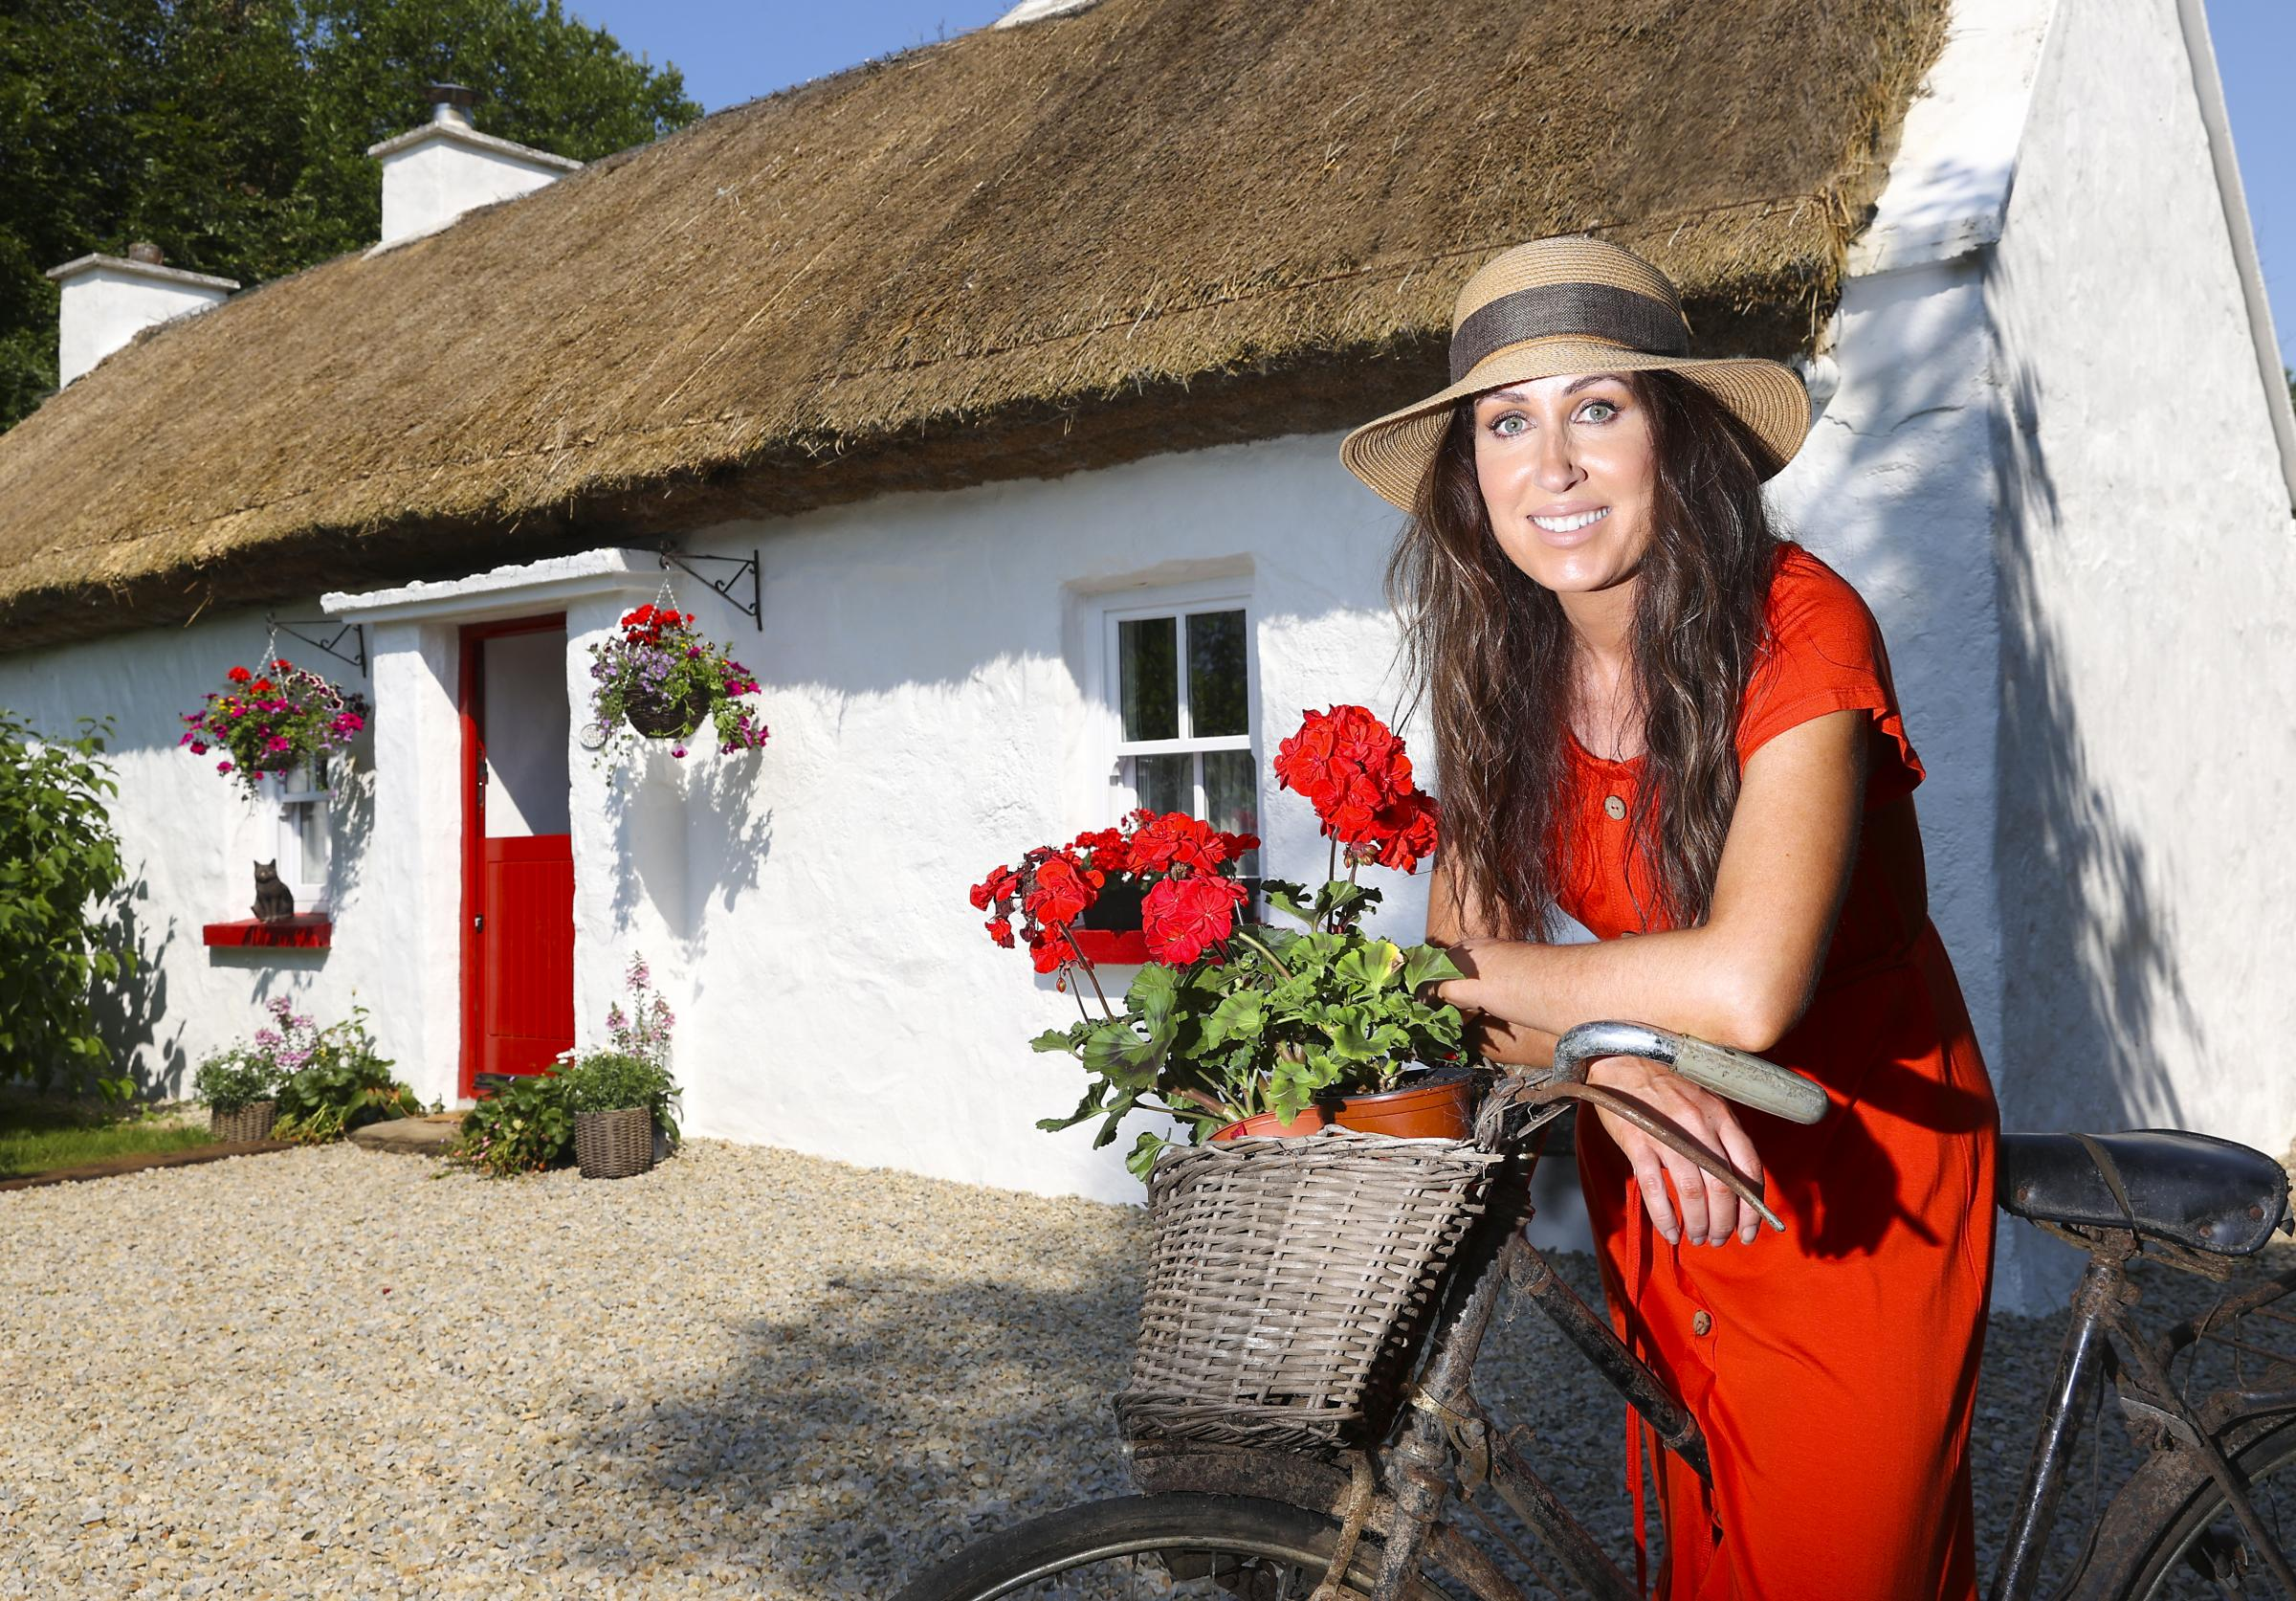 Fermanagh thatched cottage wows with nods to Irish heritage